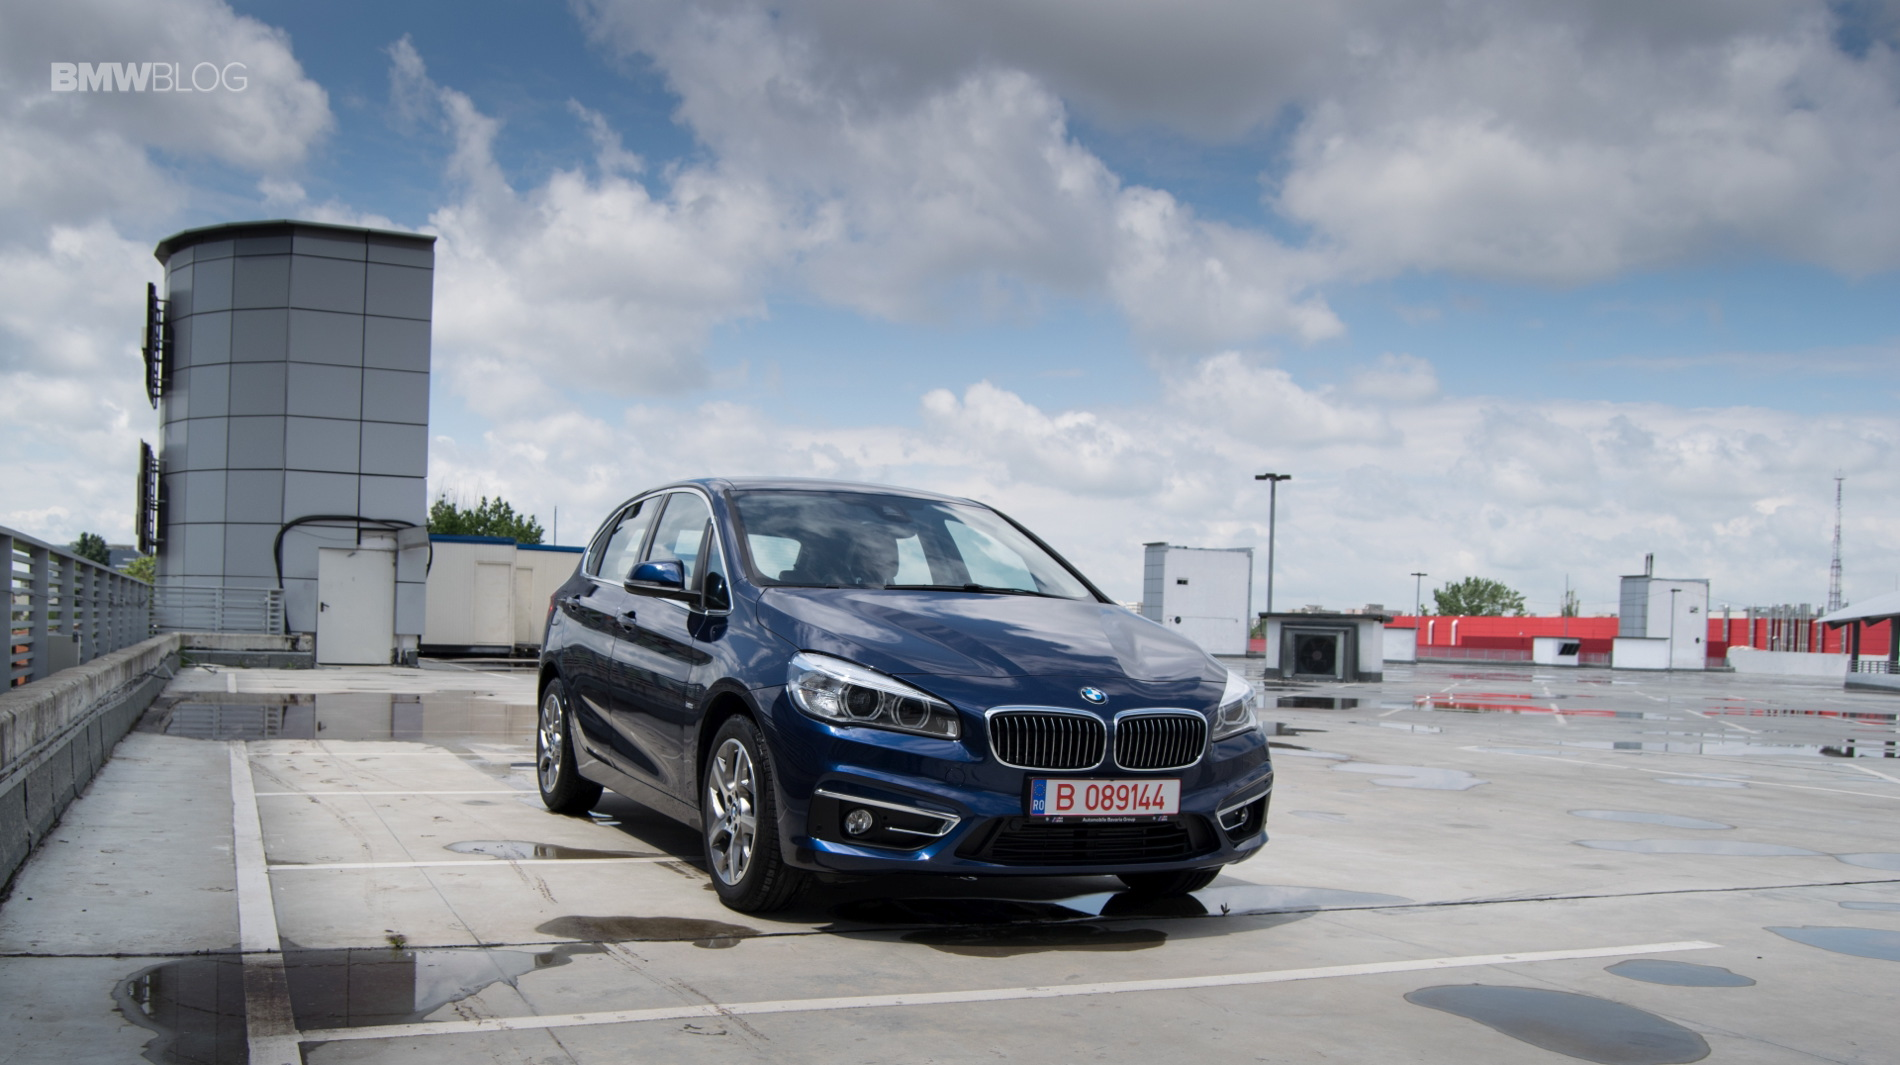 BMW 216d Active Tourer test drive 10